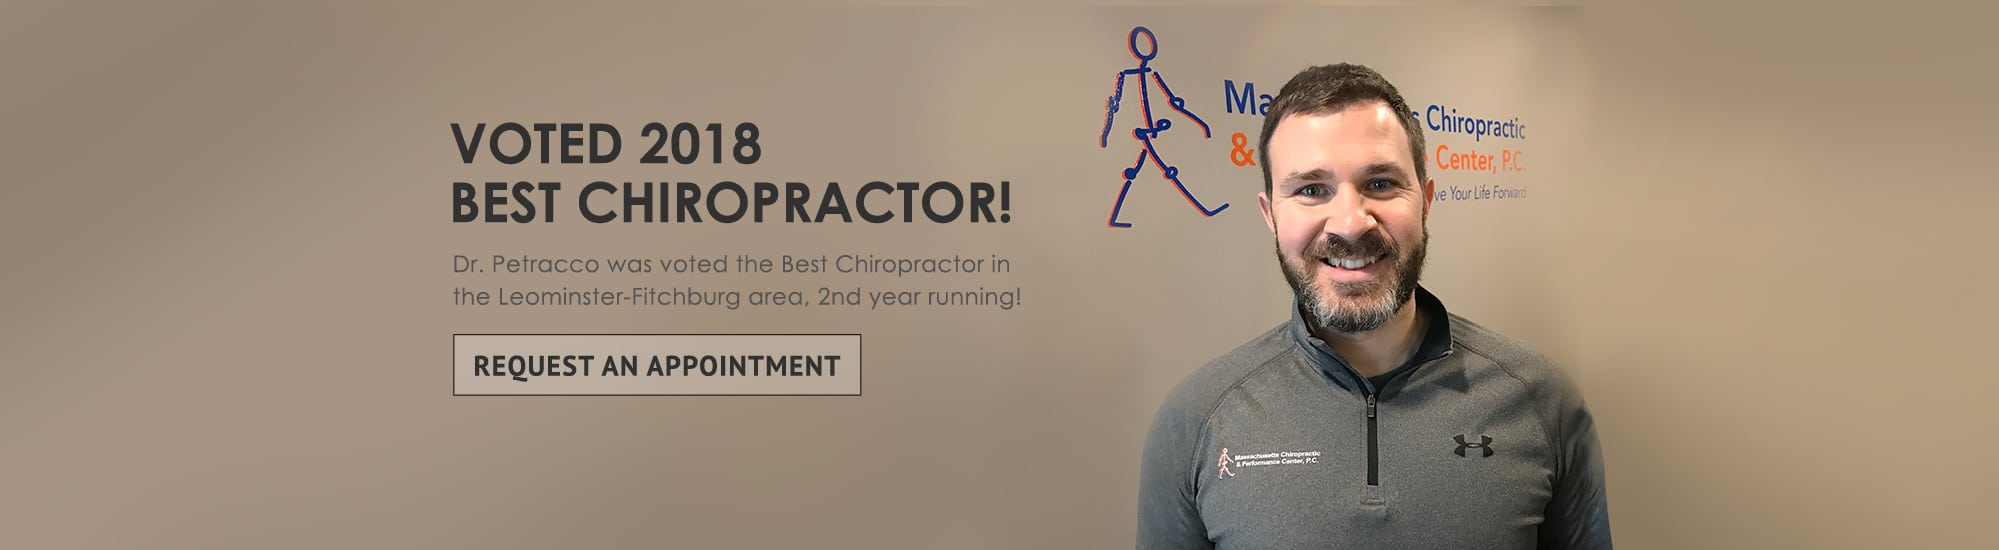 voted 2018 best chiropractor